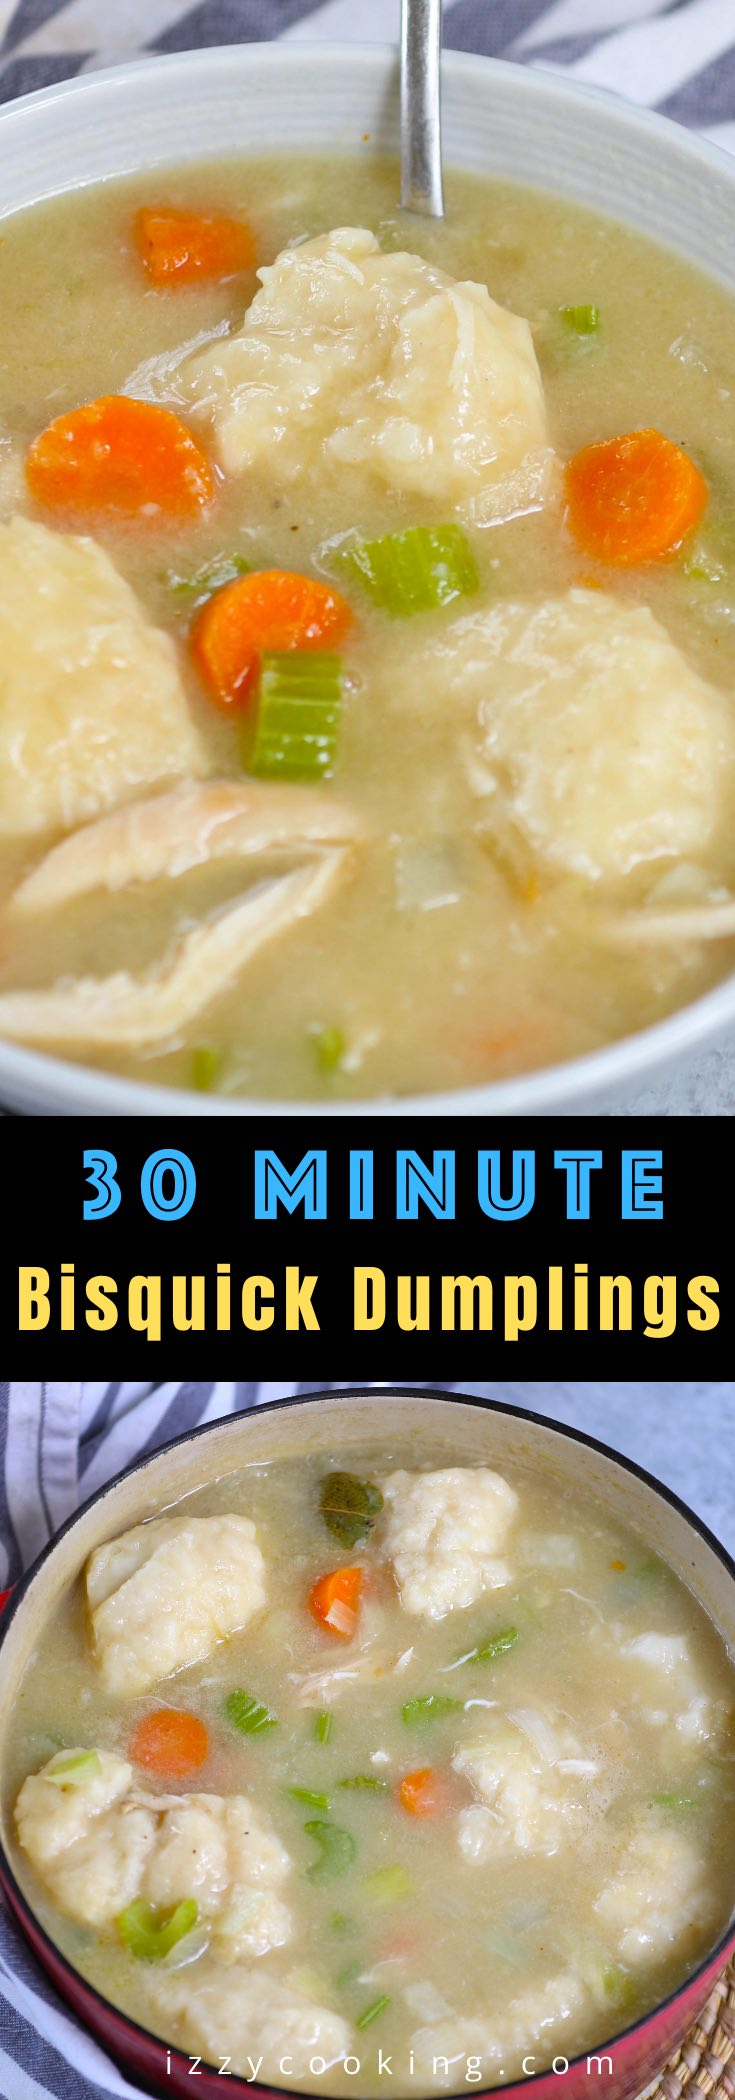 There's nothing quite as comforting as a warm, savory bowl of homemade Bisquick Chicken and Dumplings. Made with Original Bisquick mix, these hearty Bisquick Dumplings are super easy to make in a Dutch oven or slow cooker. You can boil the chicken from scratch or use rotisserie chicken for a quick dinner recipe.